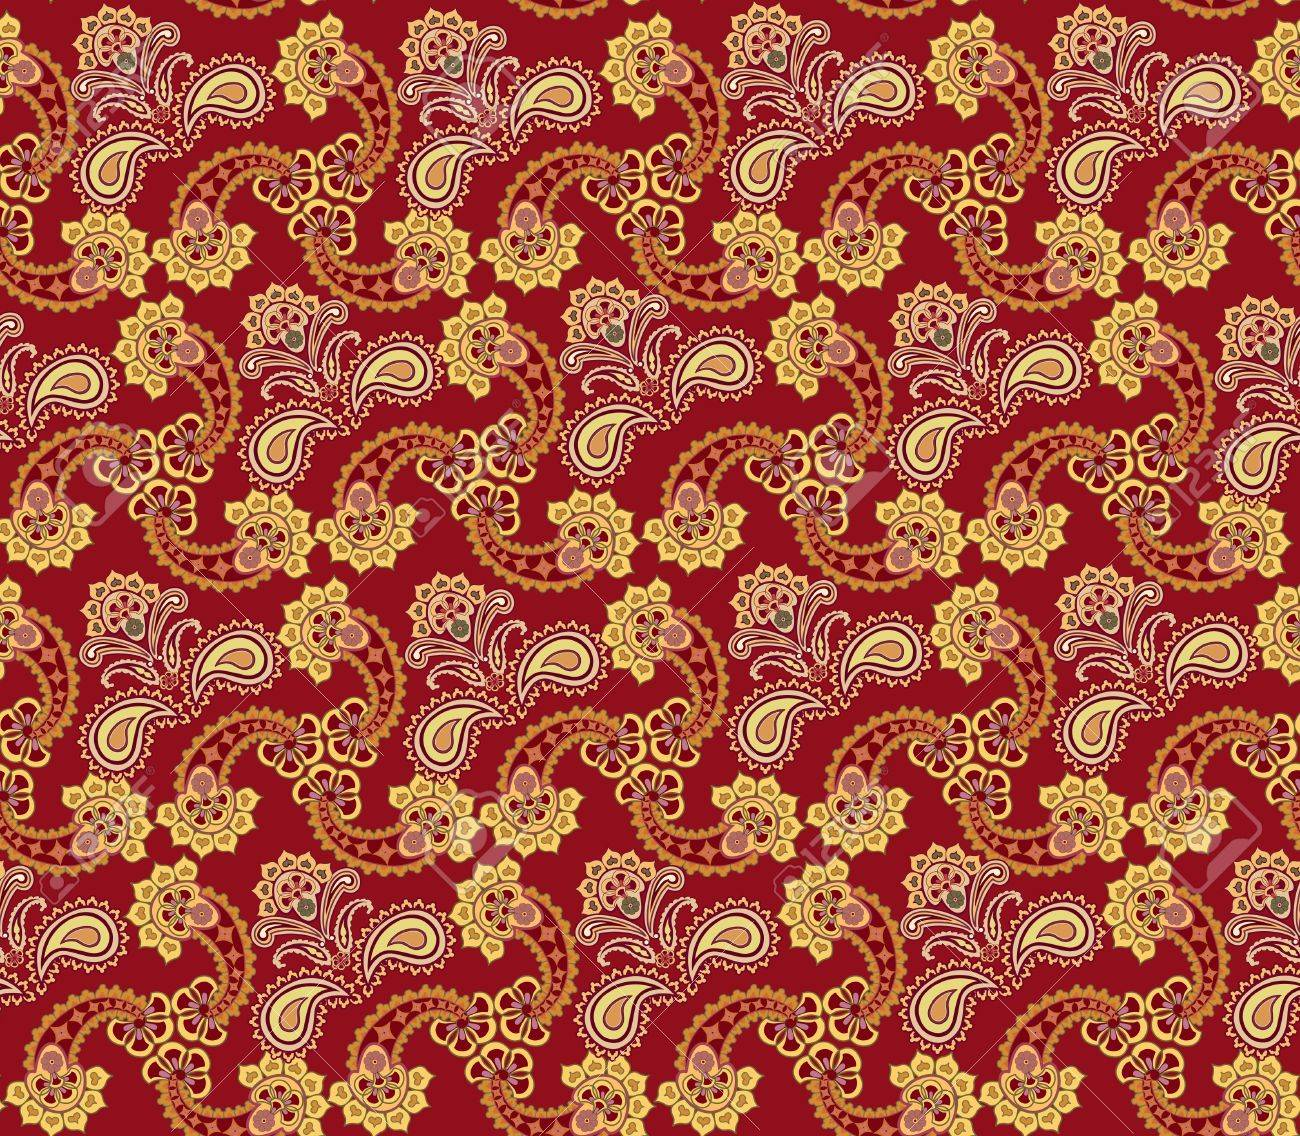 Abstract Floral Seamless Ornamental Pattern Oriental Flower